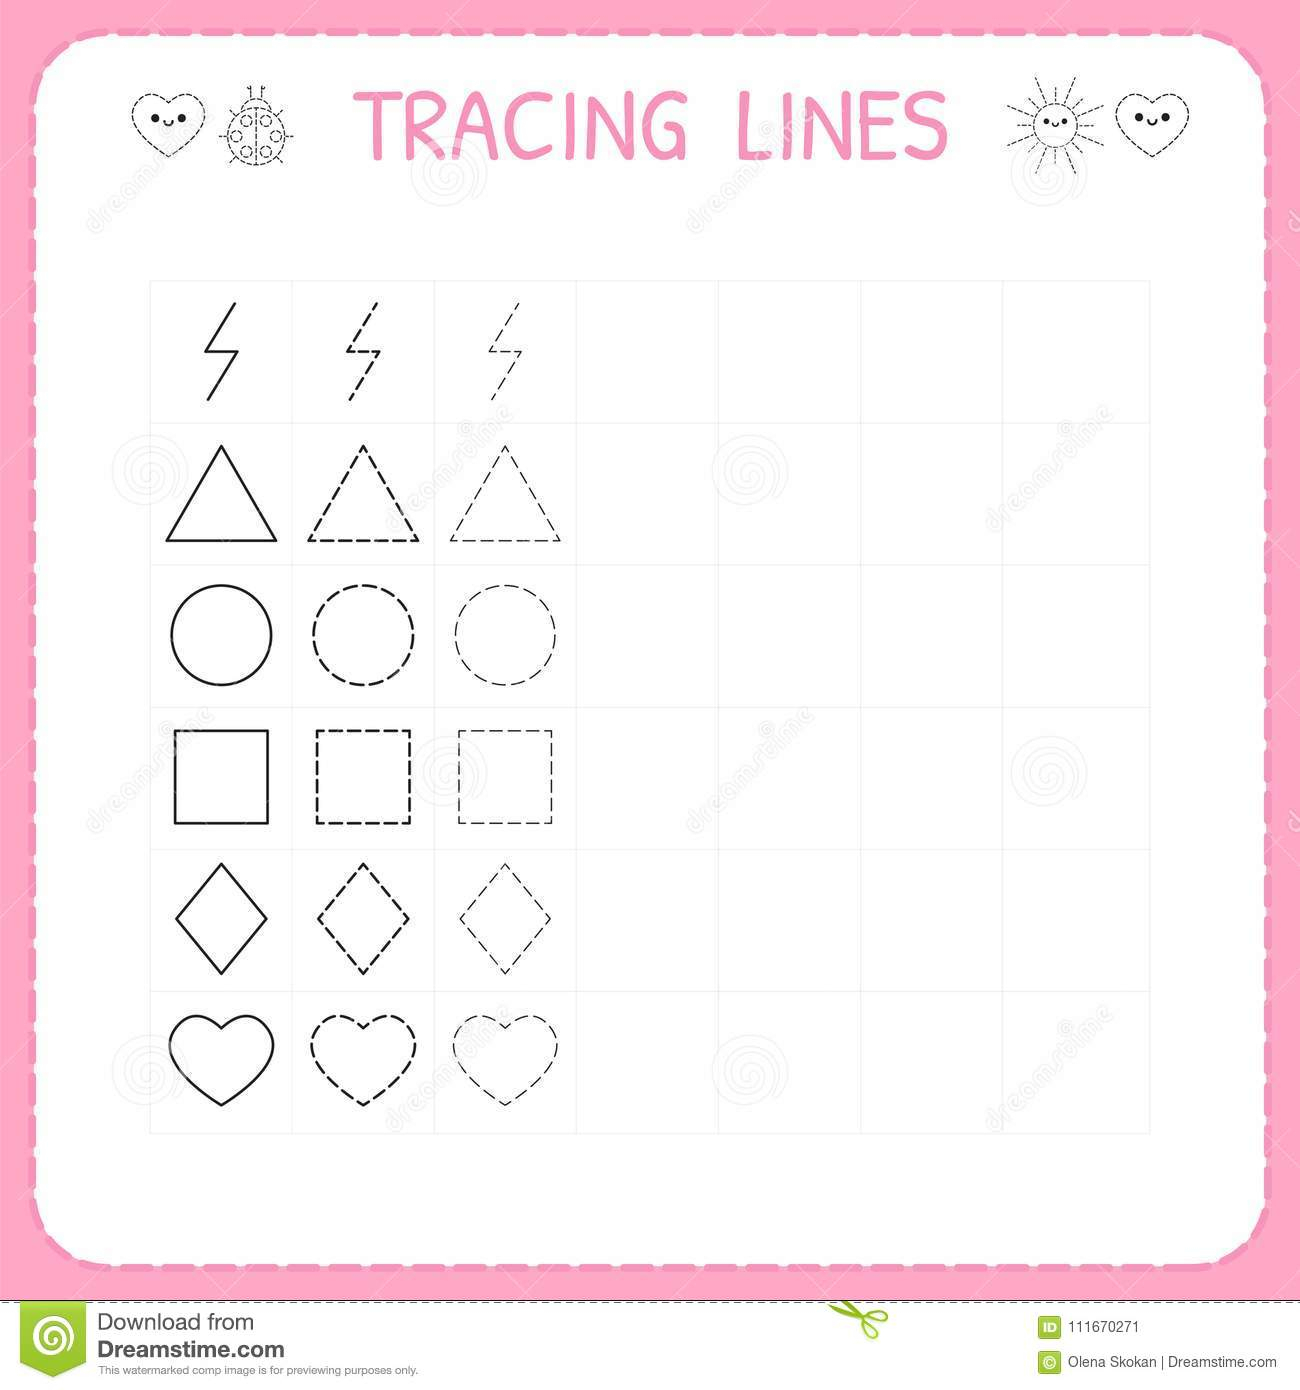 Writing Worksheets For Kids Trace Line Worksheet Working pertaining to Trace Letters Worksheet For Grade 1